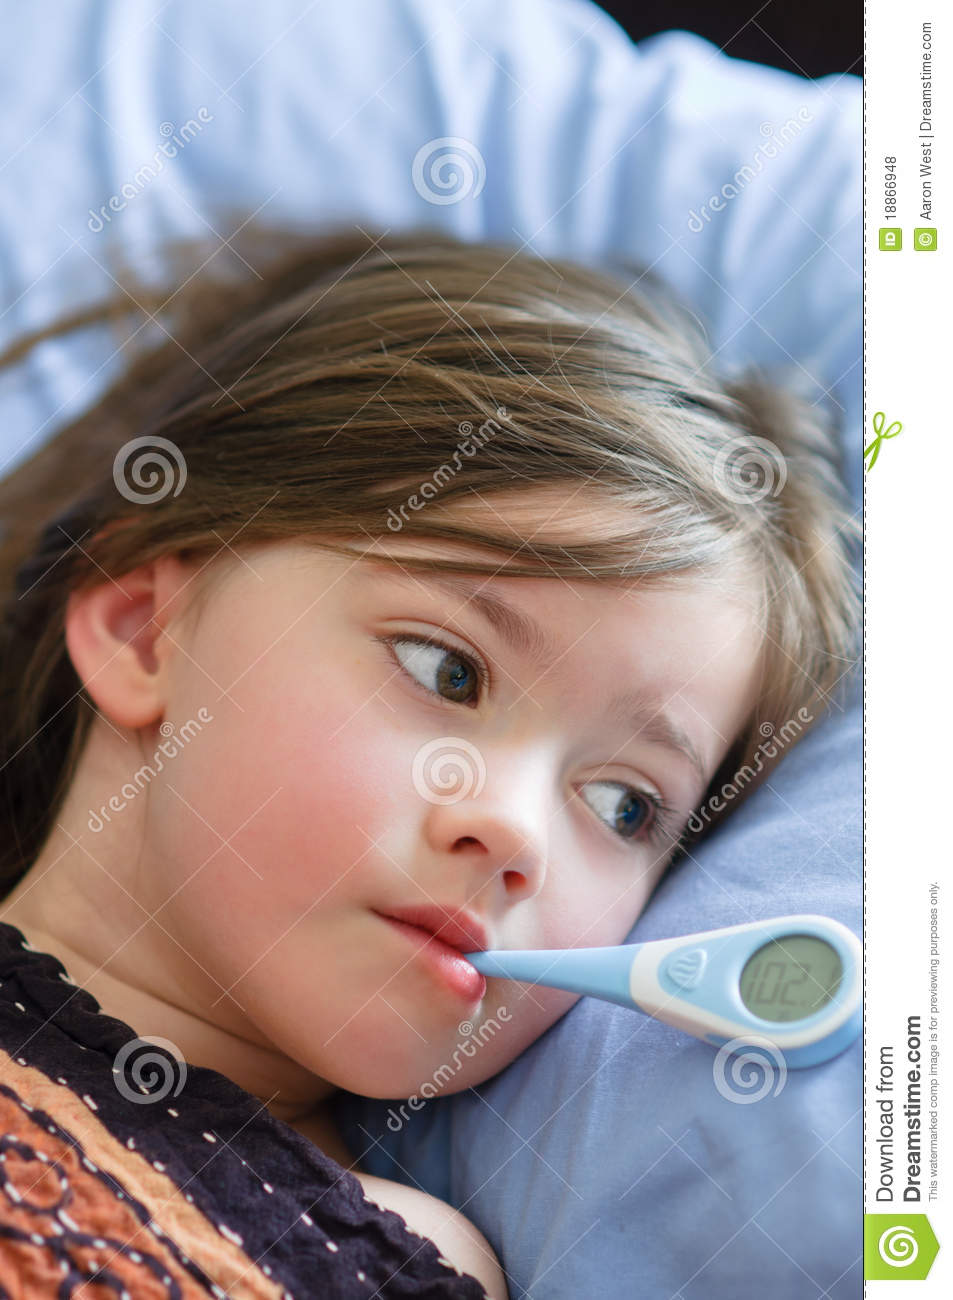 Sick Girl With Fever stock photo Image of elementary